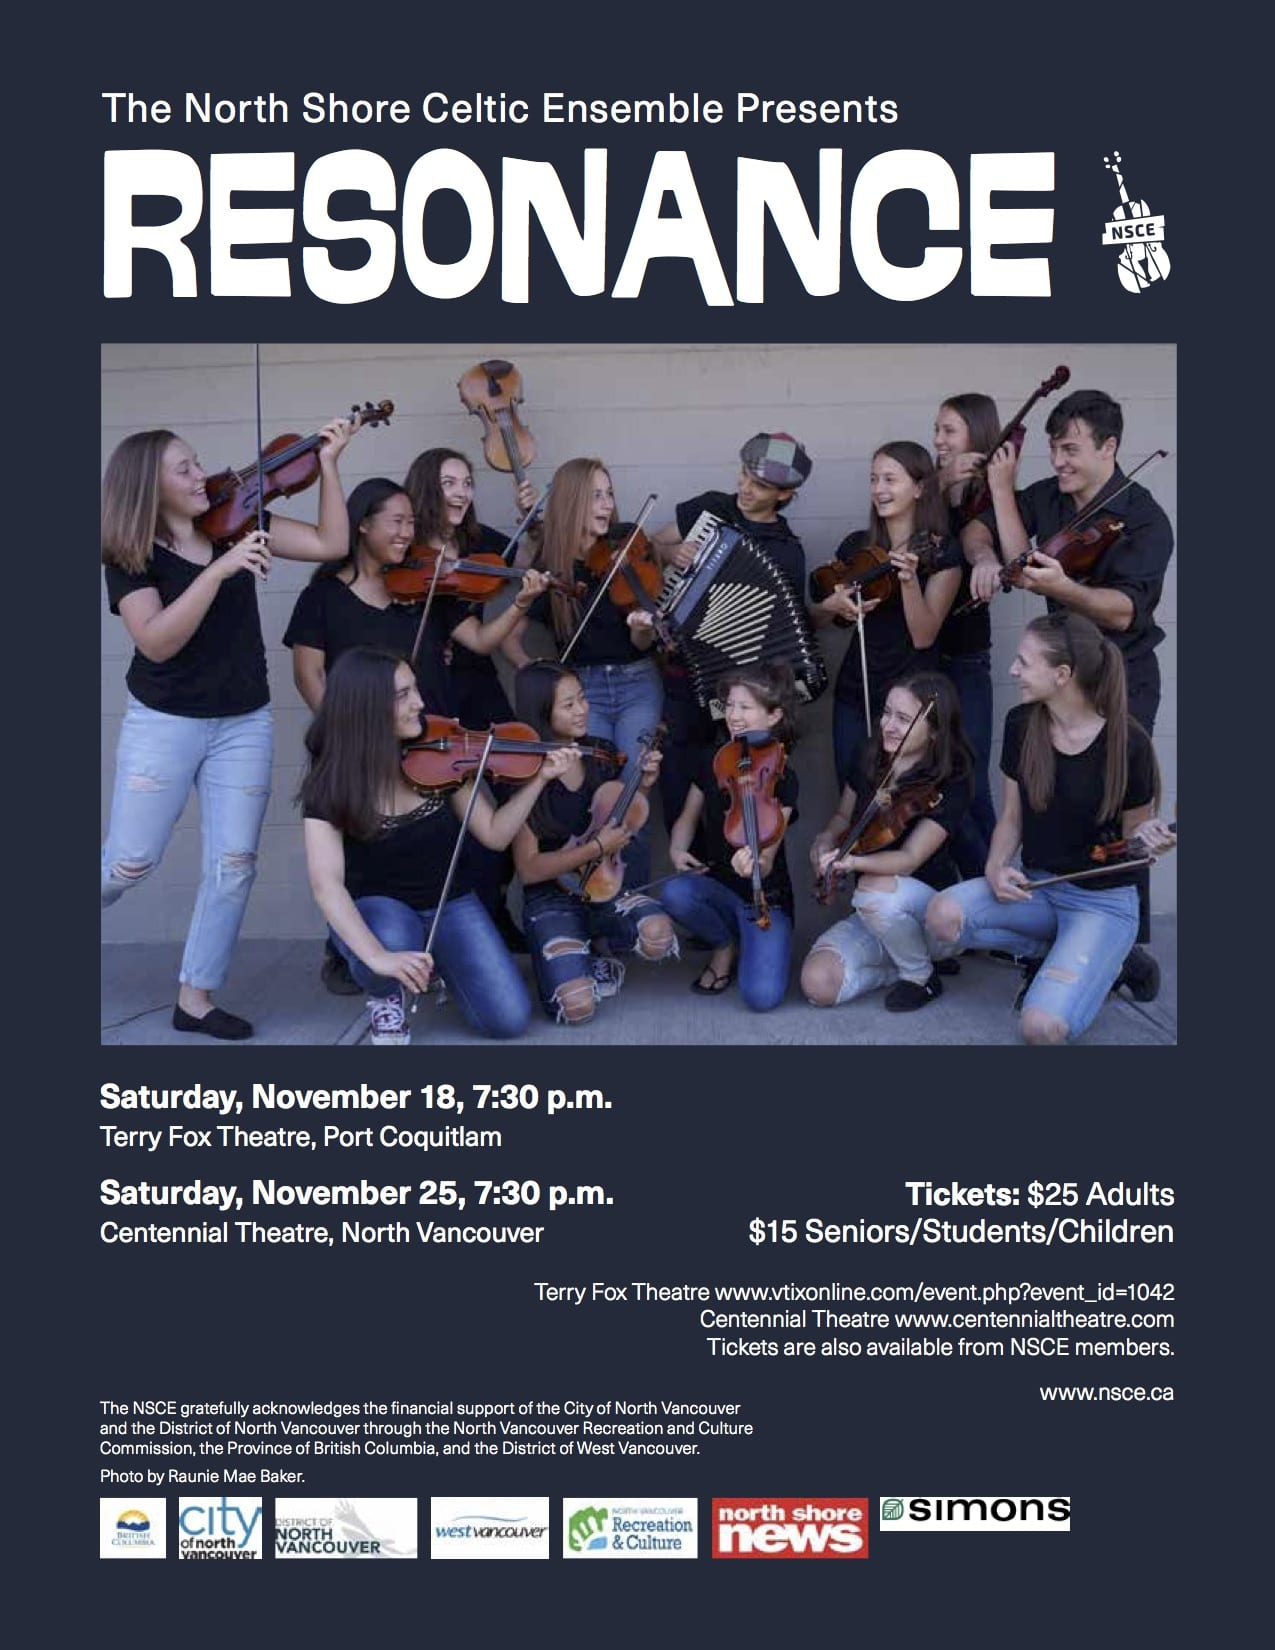 North Shore Celtic Ensemble presents 'Resonance' at the Centennial Theatre North Vancouver